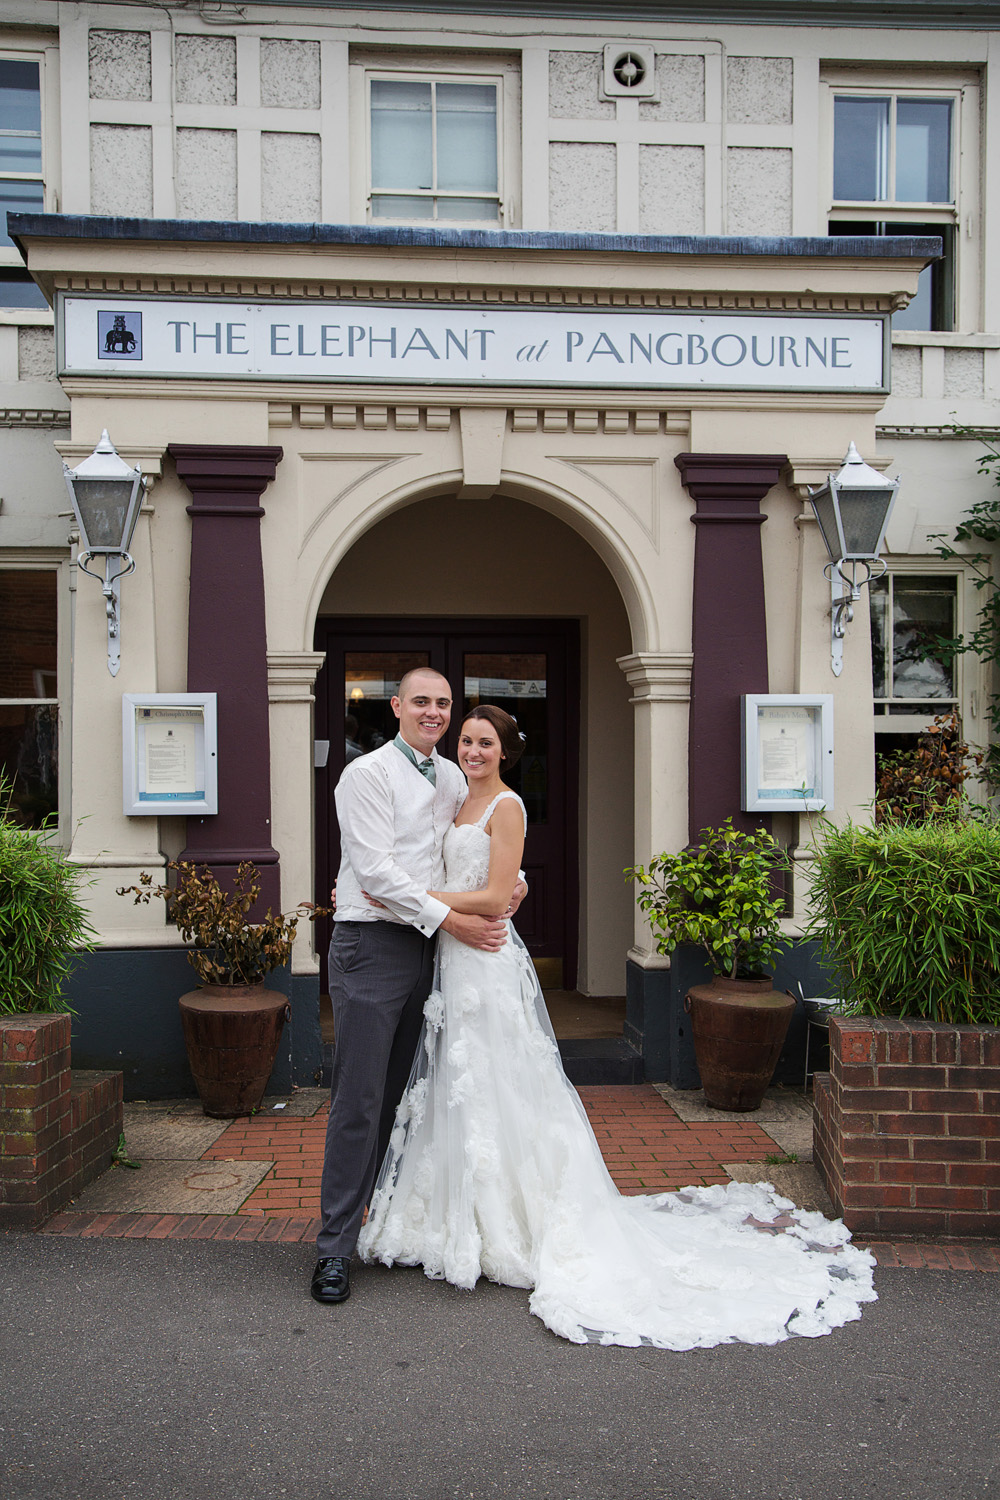 The_Elephant_Wedding_Photographer_Pangbourne_016.jpg